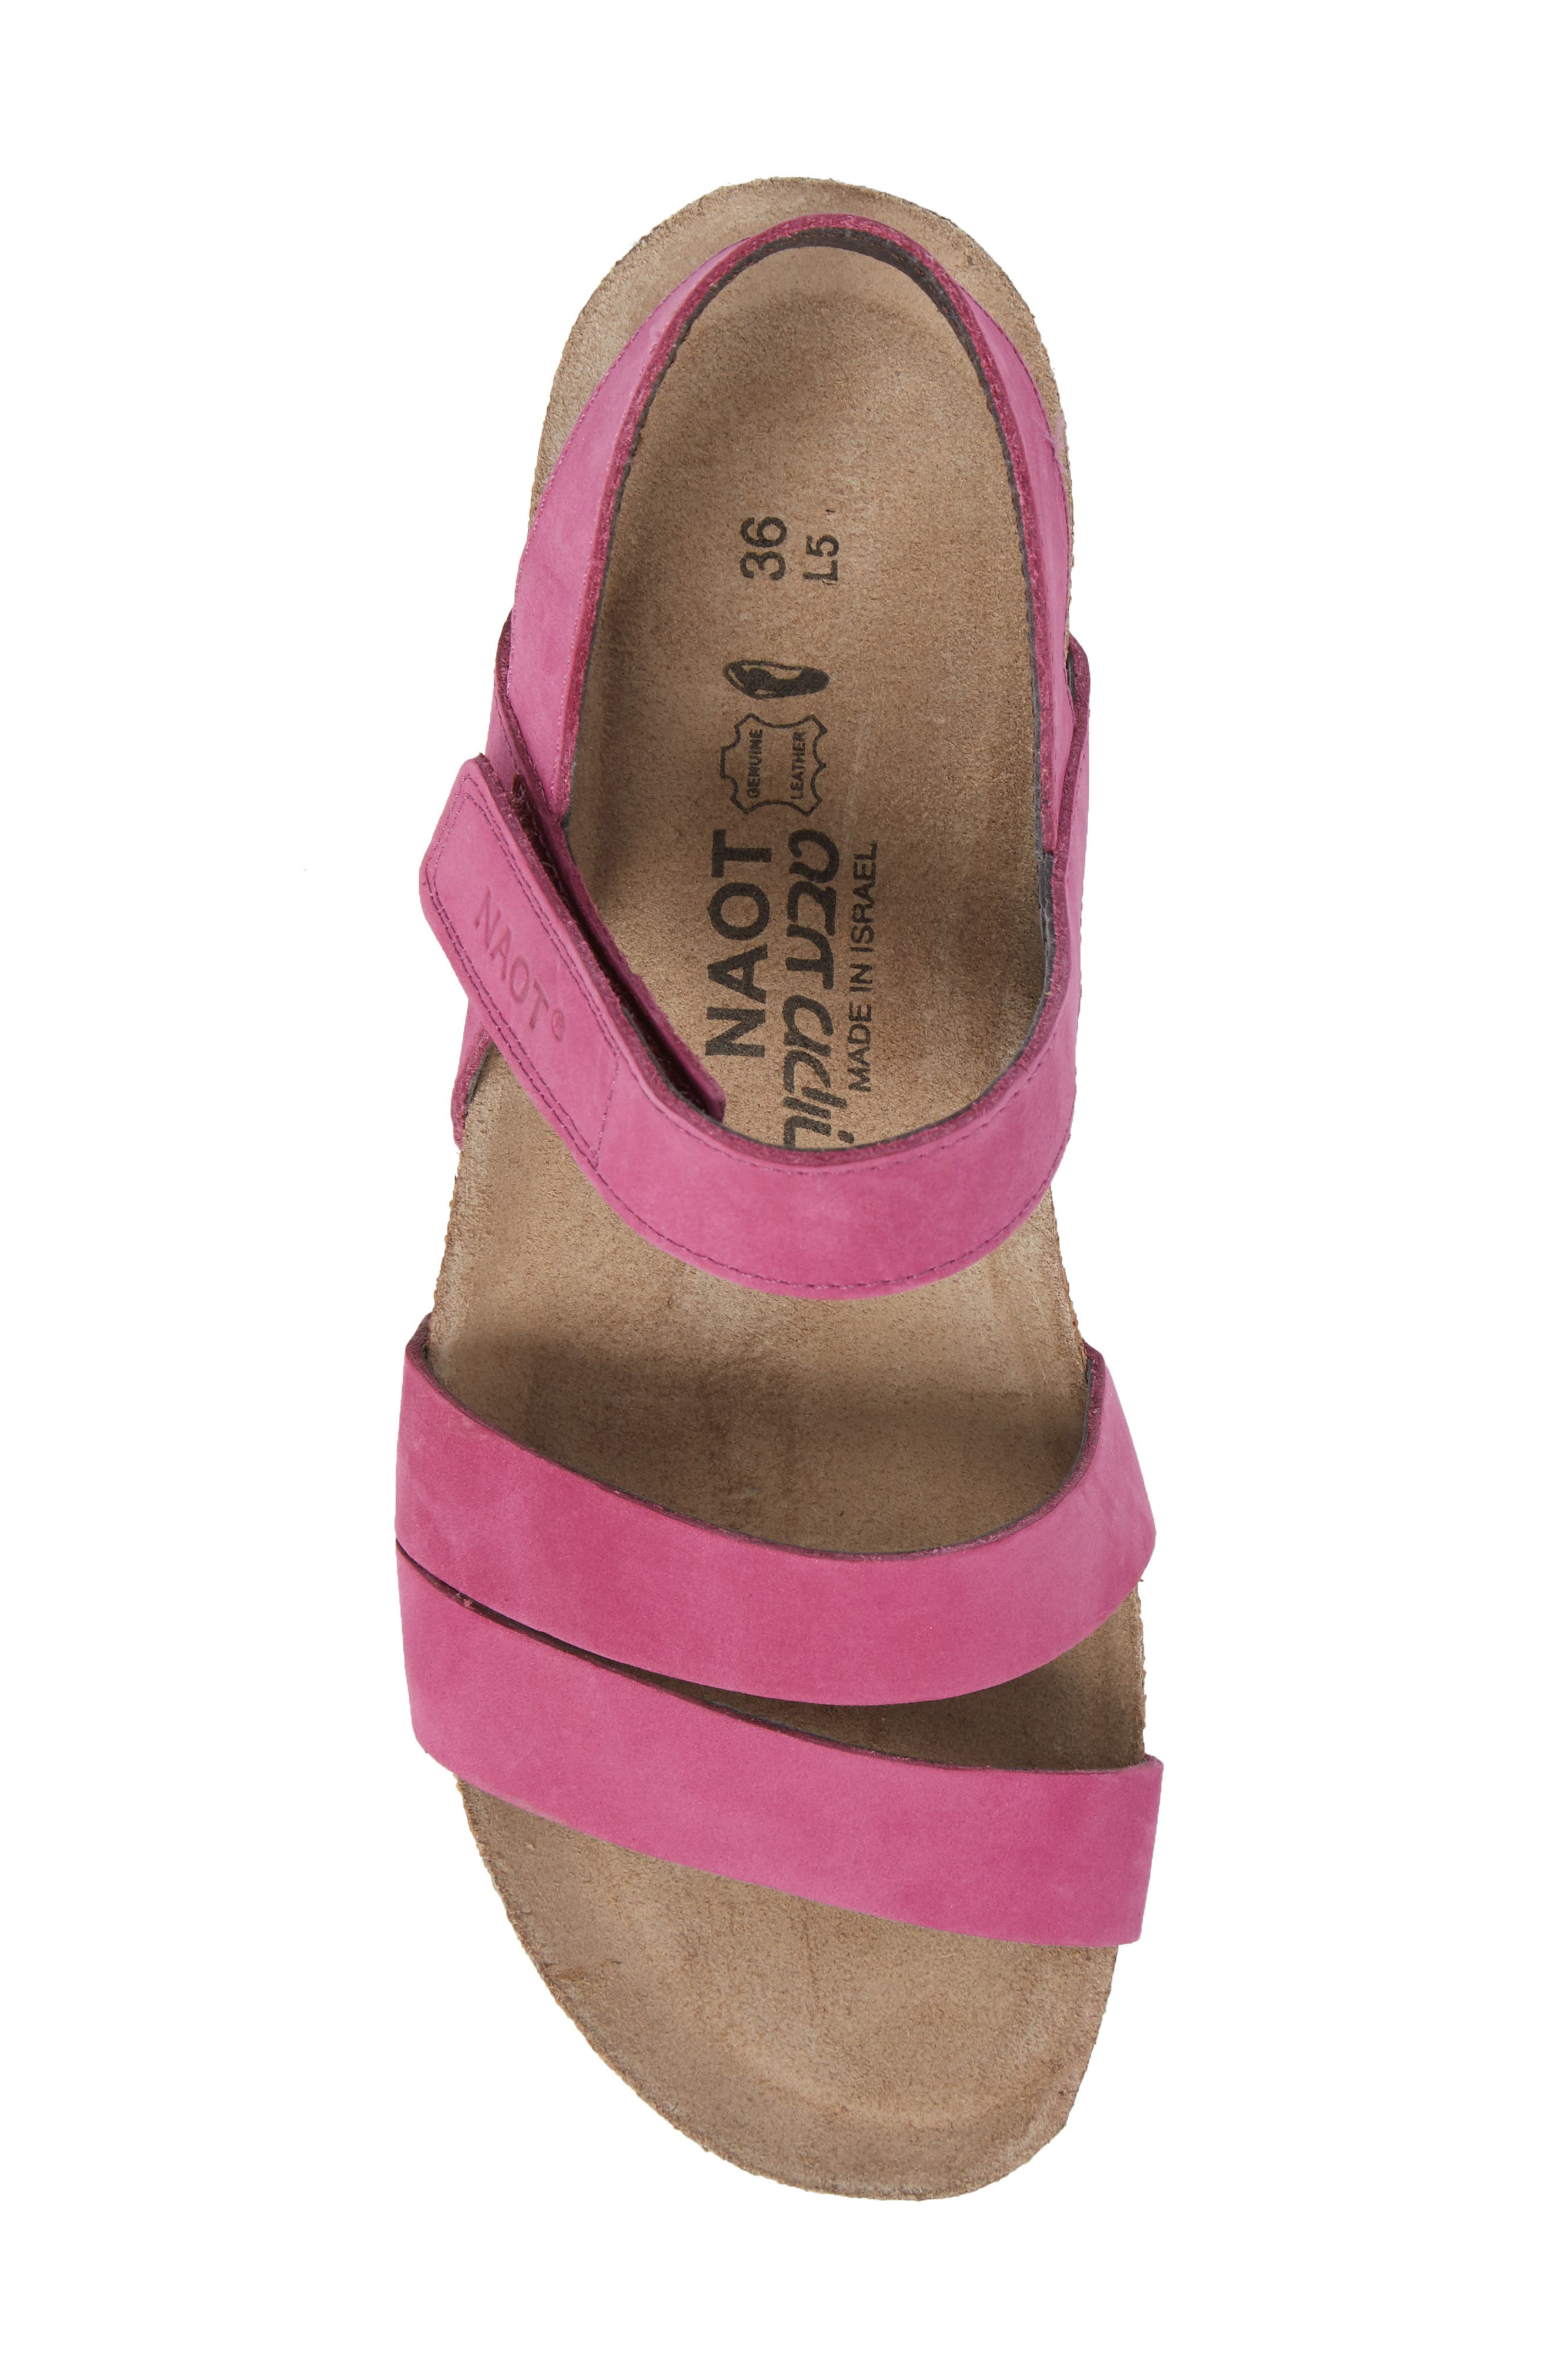 'Kayla' Sandal,                             Alternate thumbnail 5, color,                             Pink Plum Nubuck